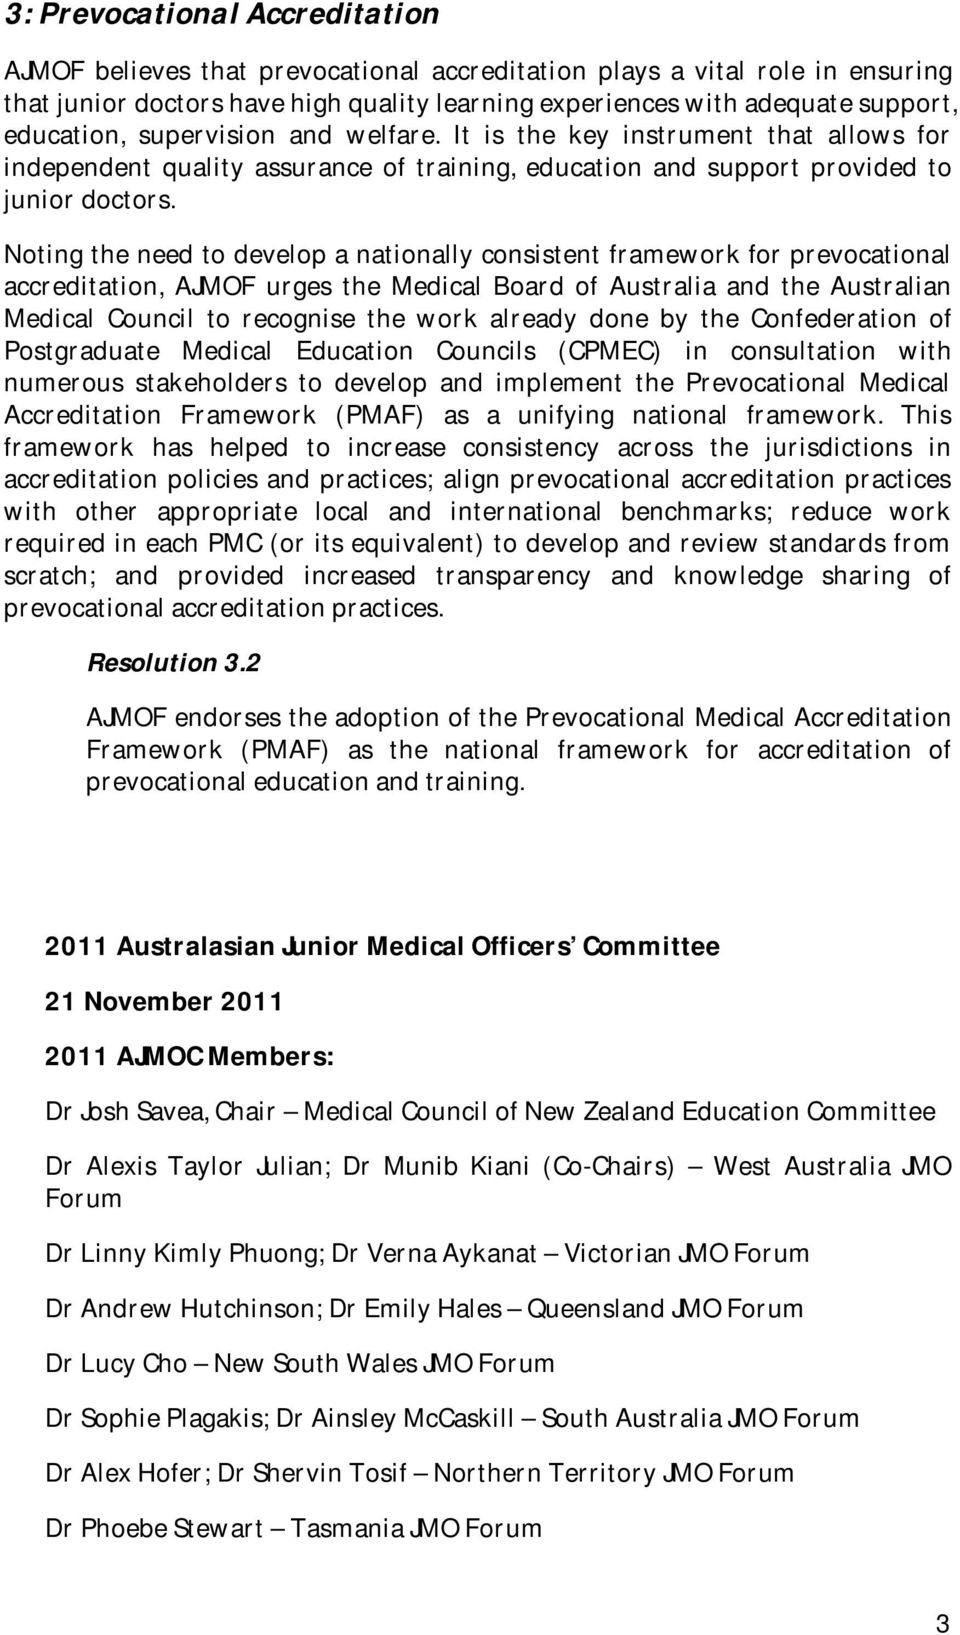 Noting the need to develop a nationally consistent framework for prevocational accreditation, AJMOF urges the Medical Board of Australia and the Australian Medical Council to recognise the work